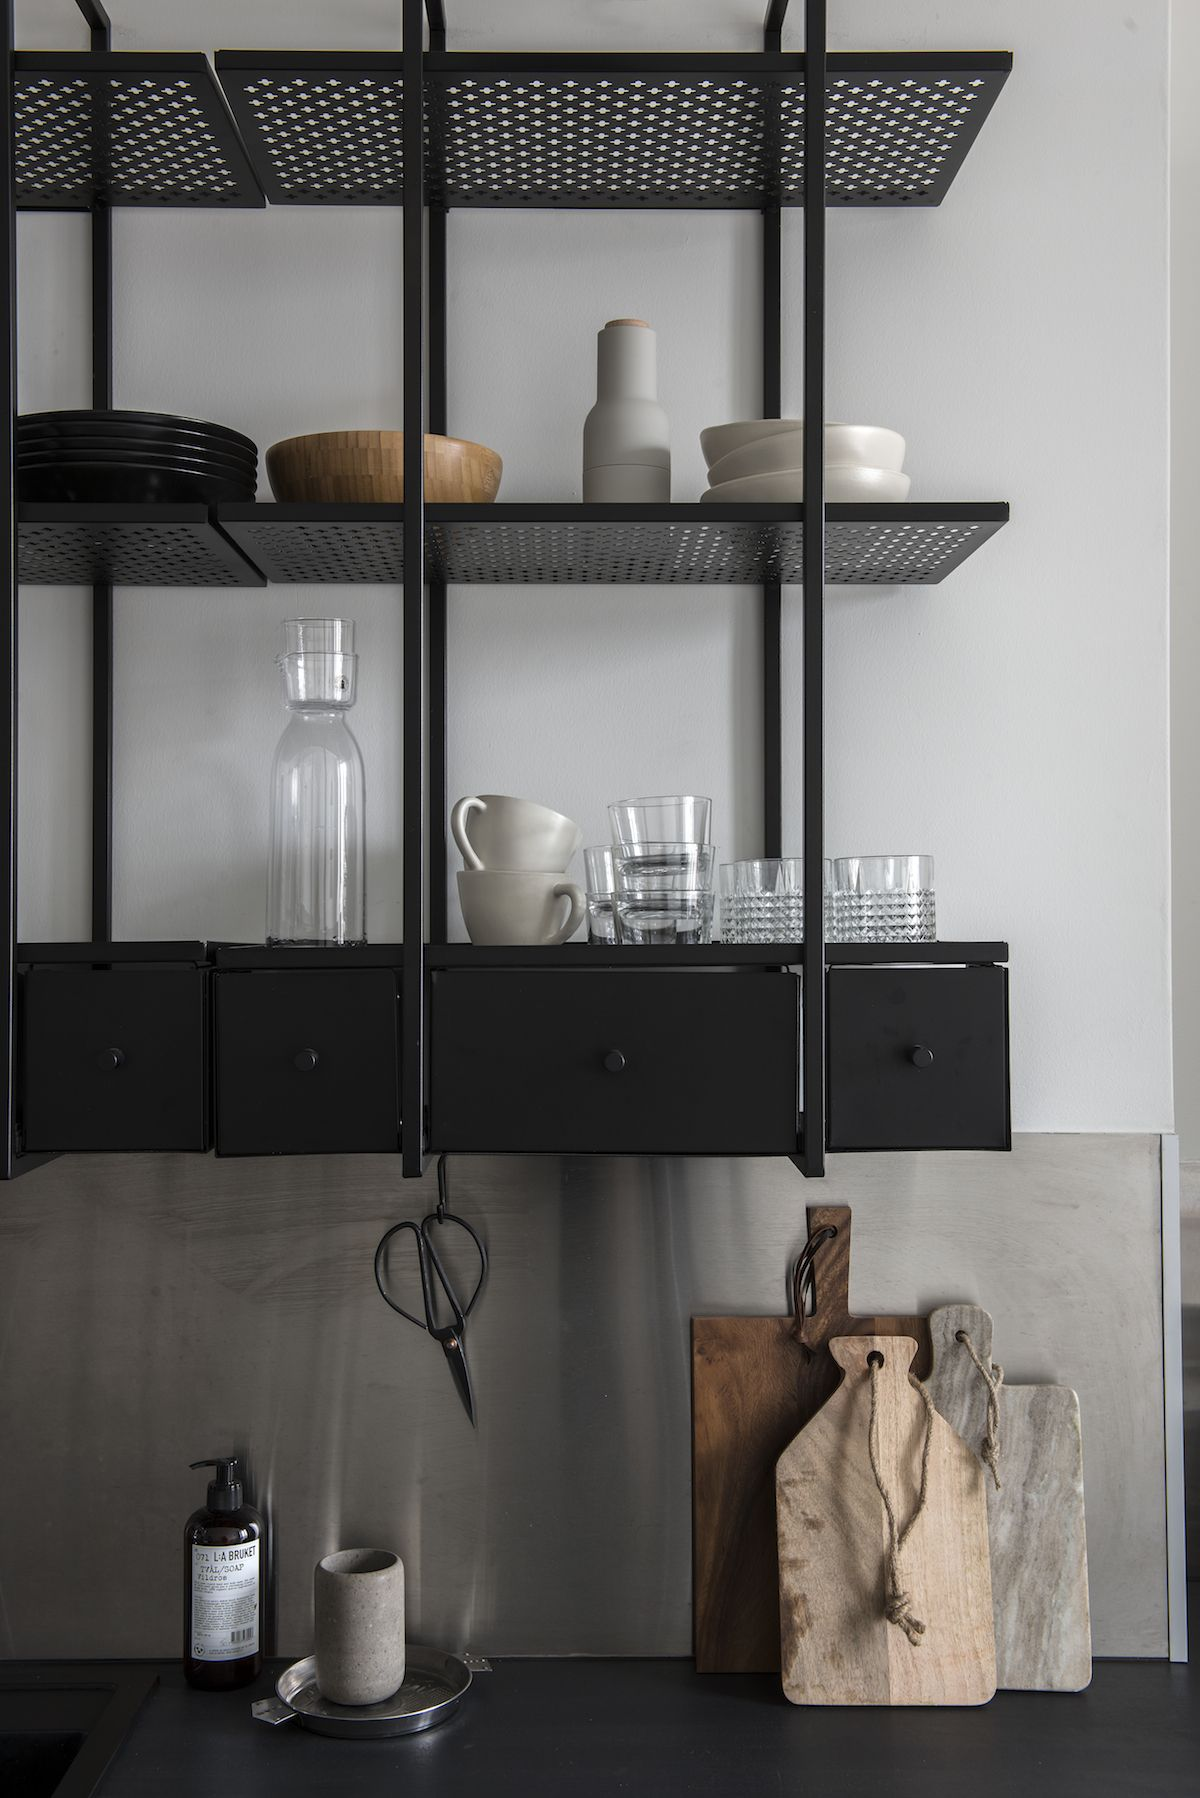 Unusual Black Metal Shelves In The Kitchen Open Shelving Storage Styling Beautiful Helsinki Home Via Coco Lapine Design